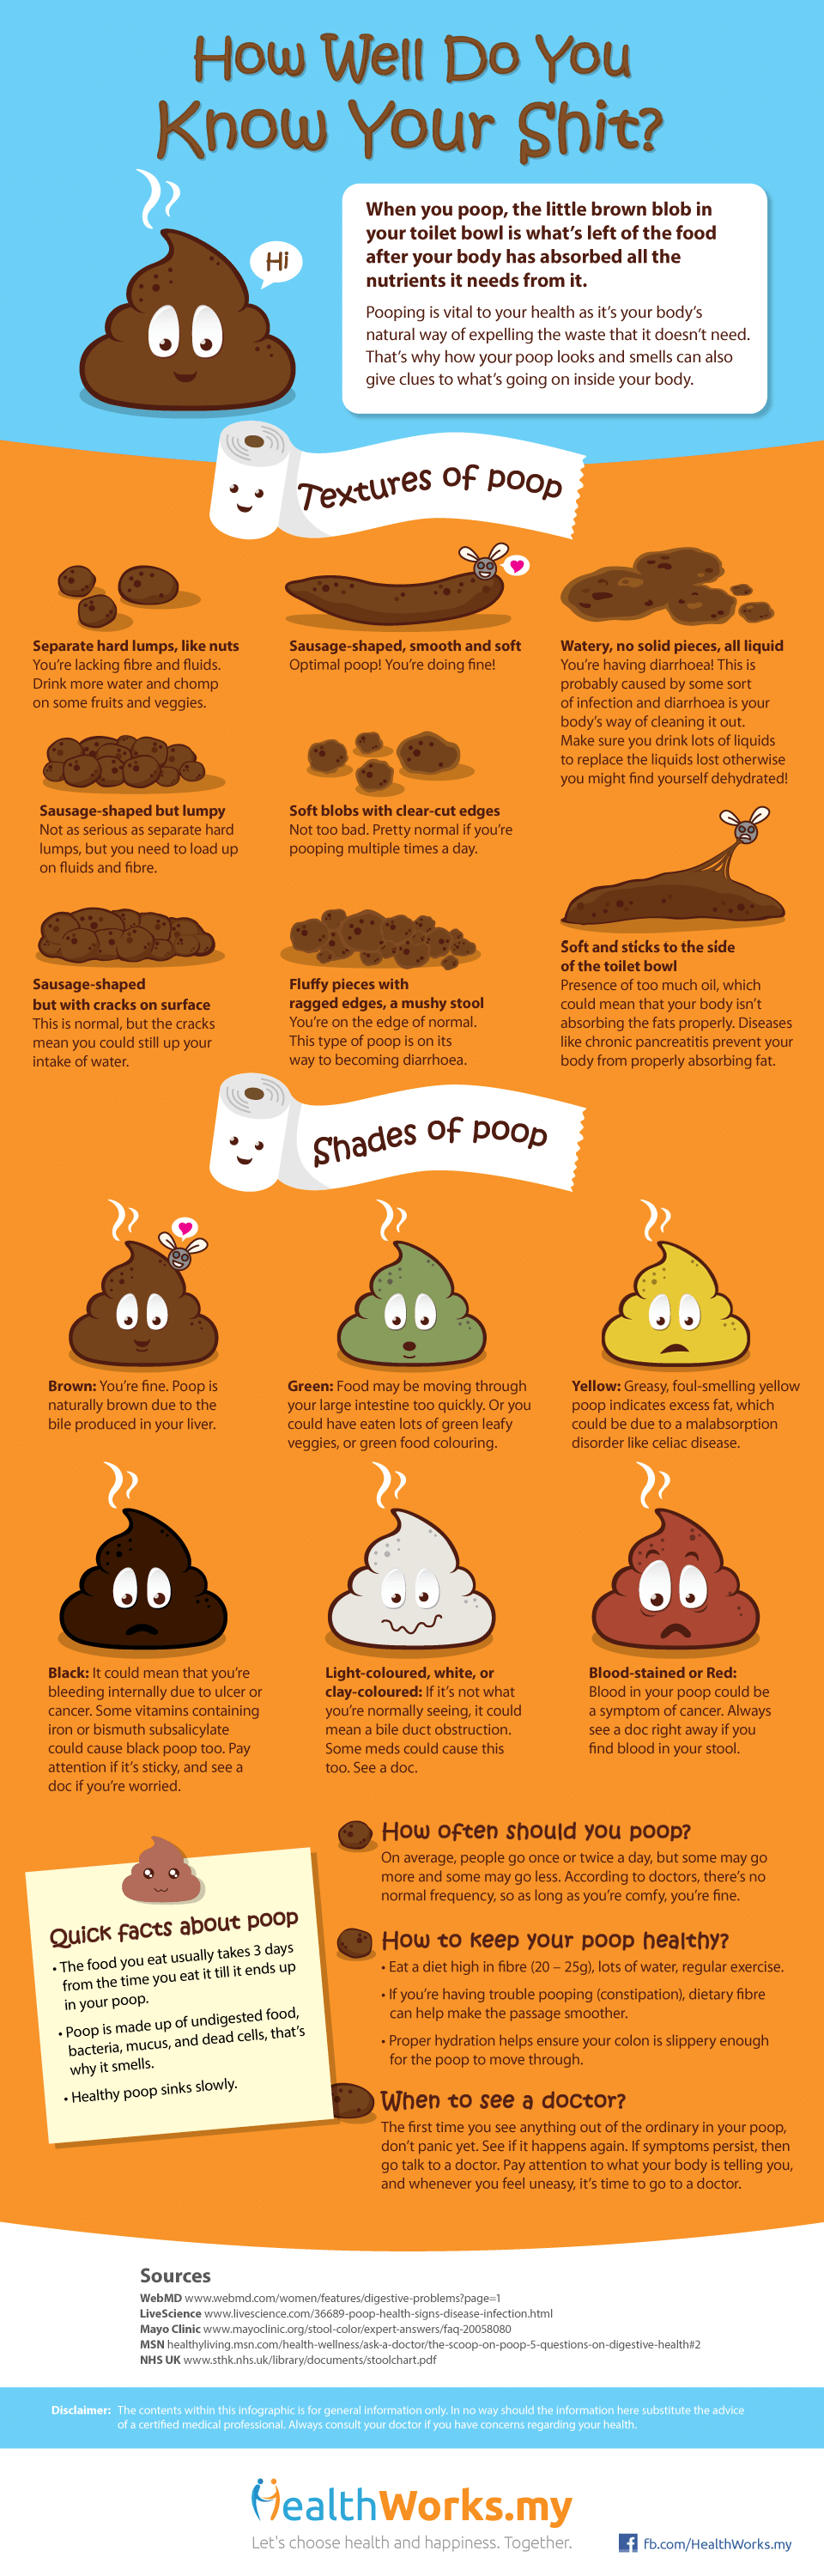 http://dingo.care2.com/pictures/greenliving/uploads/2014/06/poop-infographic-healthworks.png